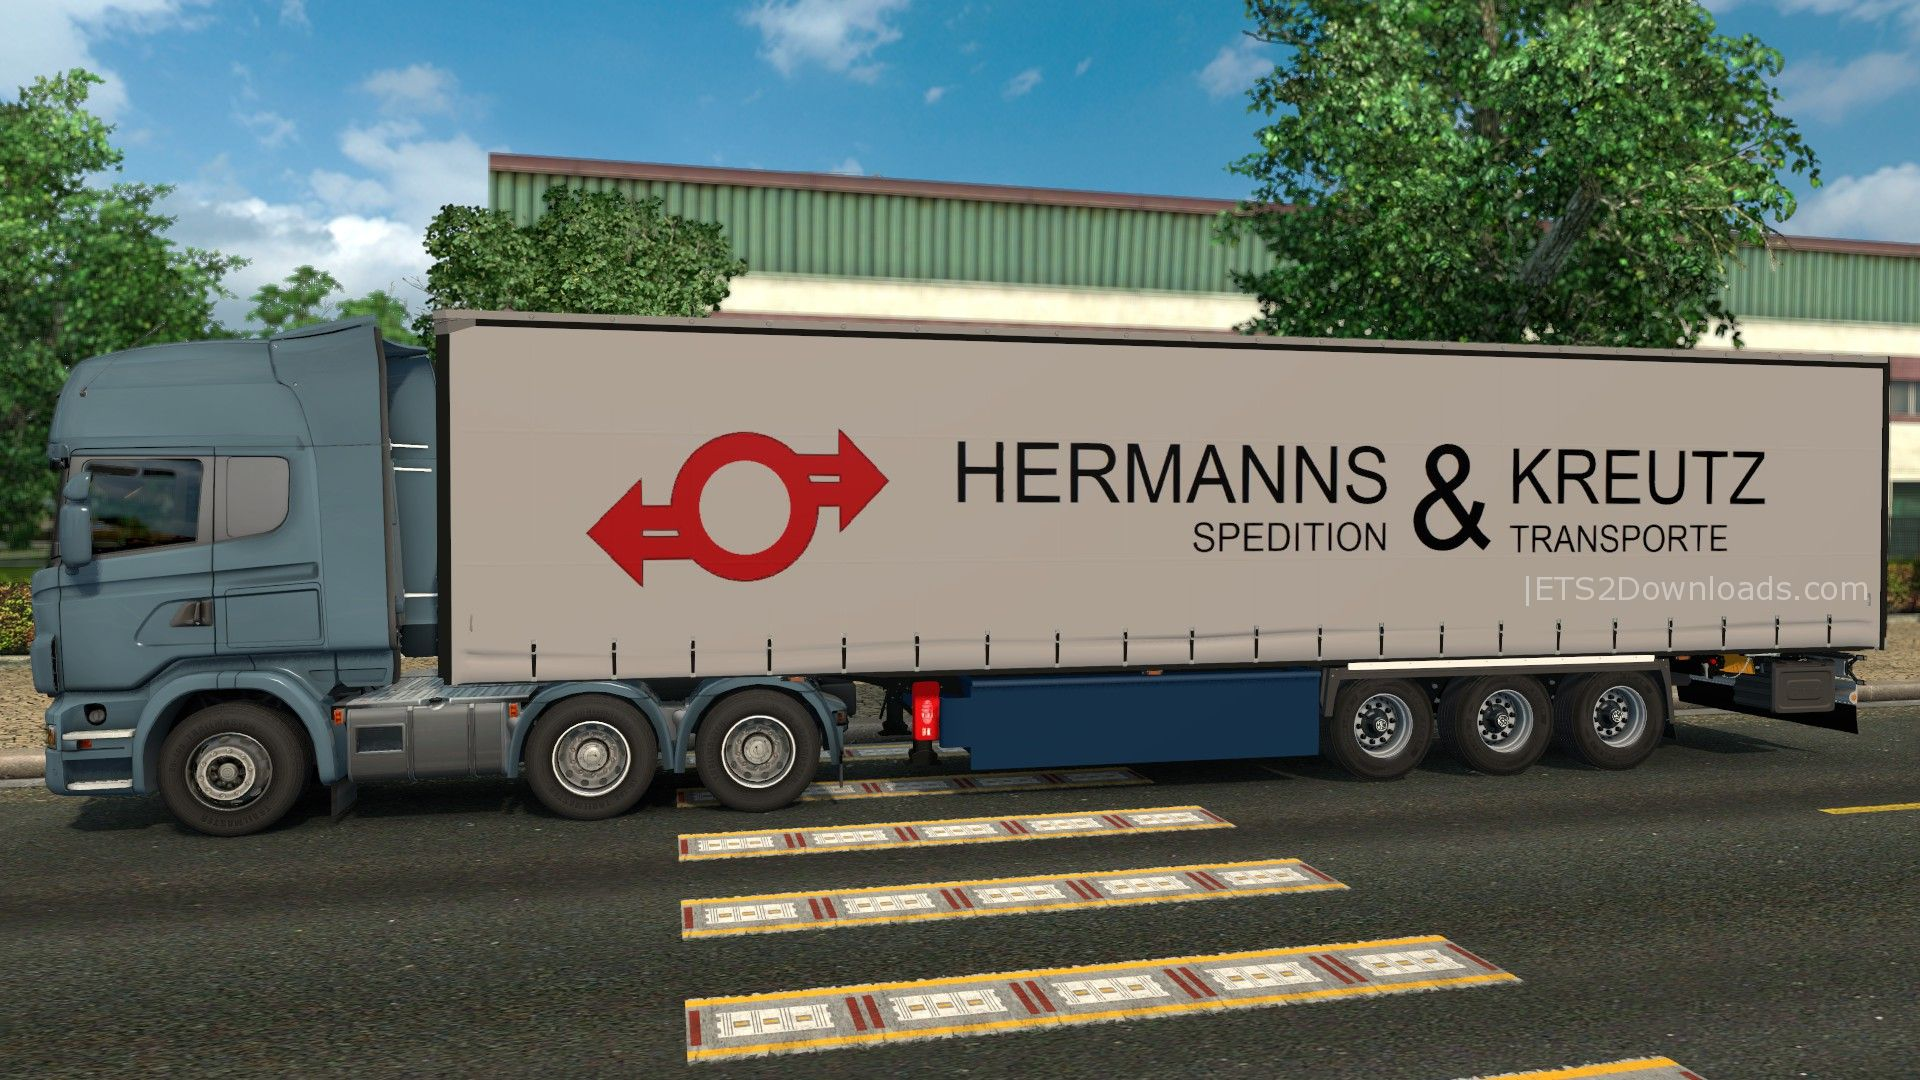 hermanns-kreutz-spedition-trailer-2